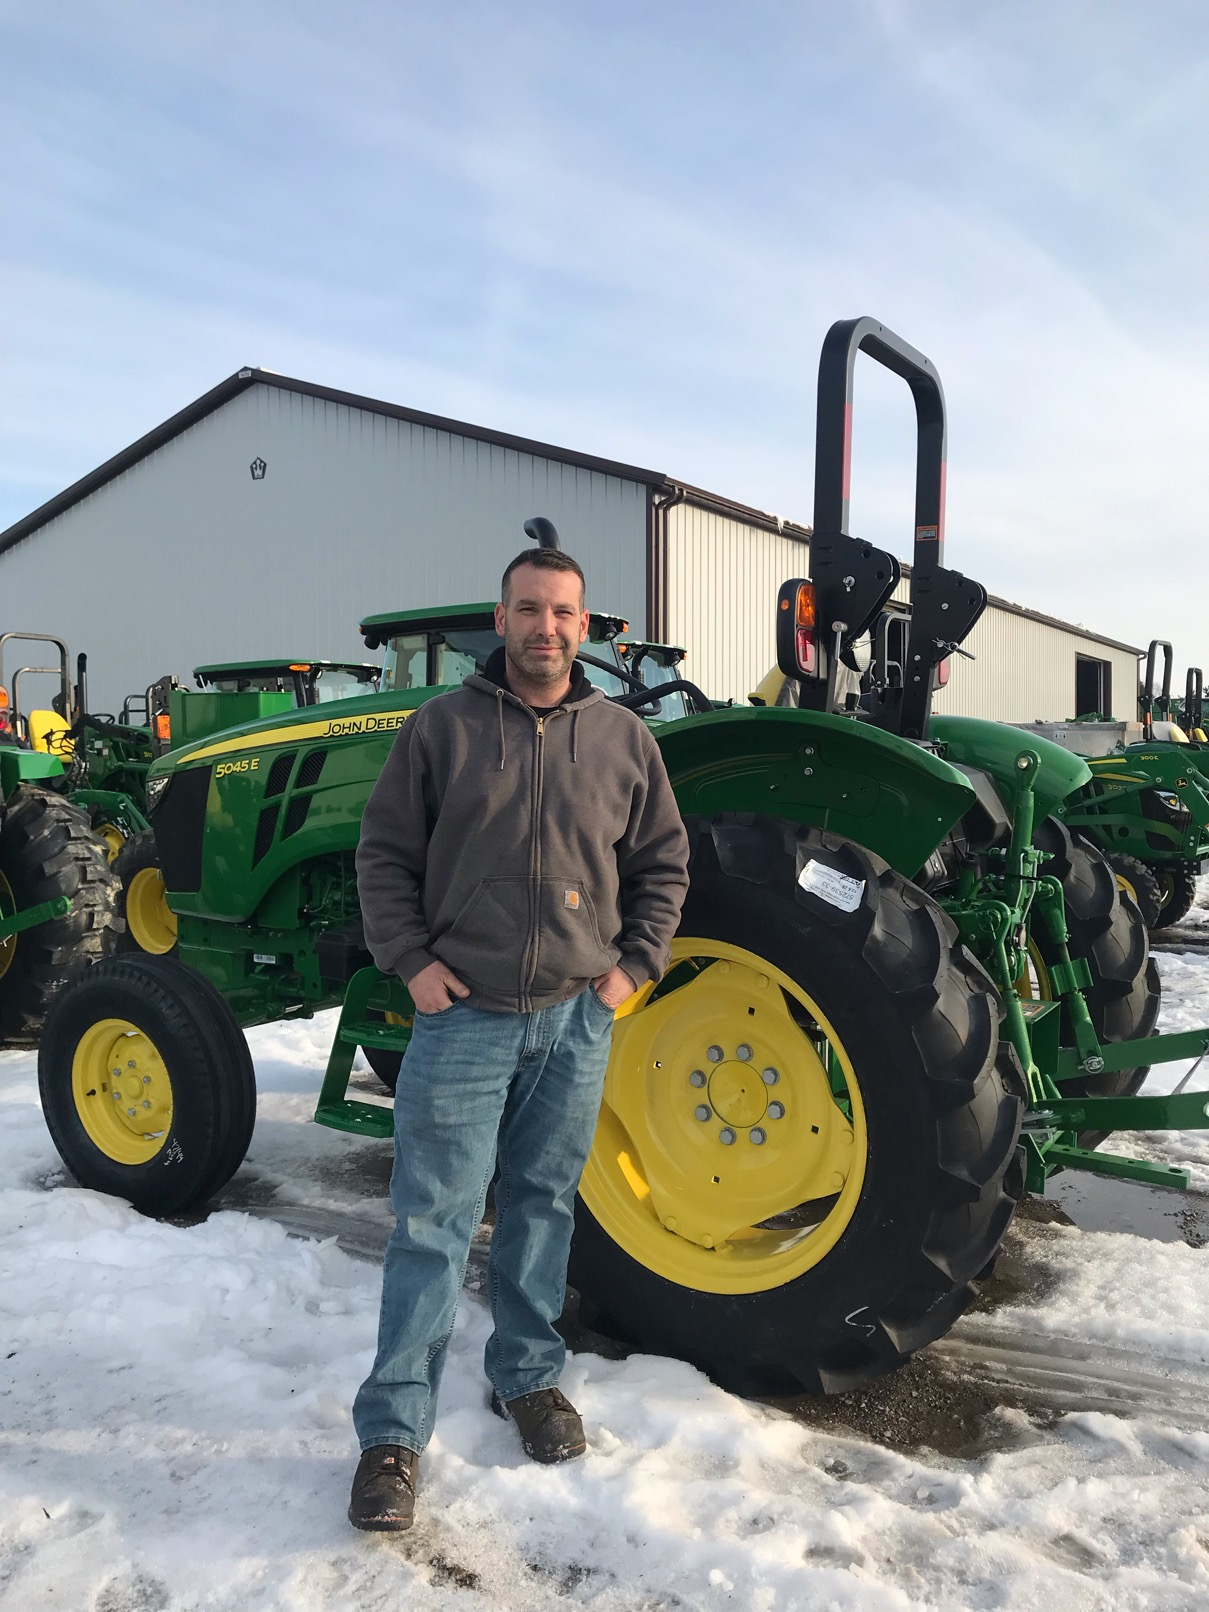 Switched over to the dark side new jd 5045e - AllisChalmers Forum